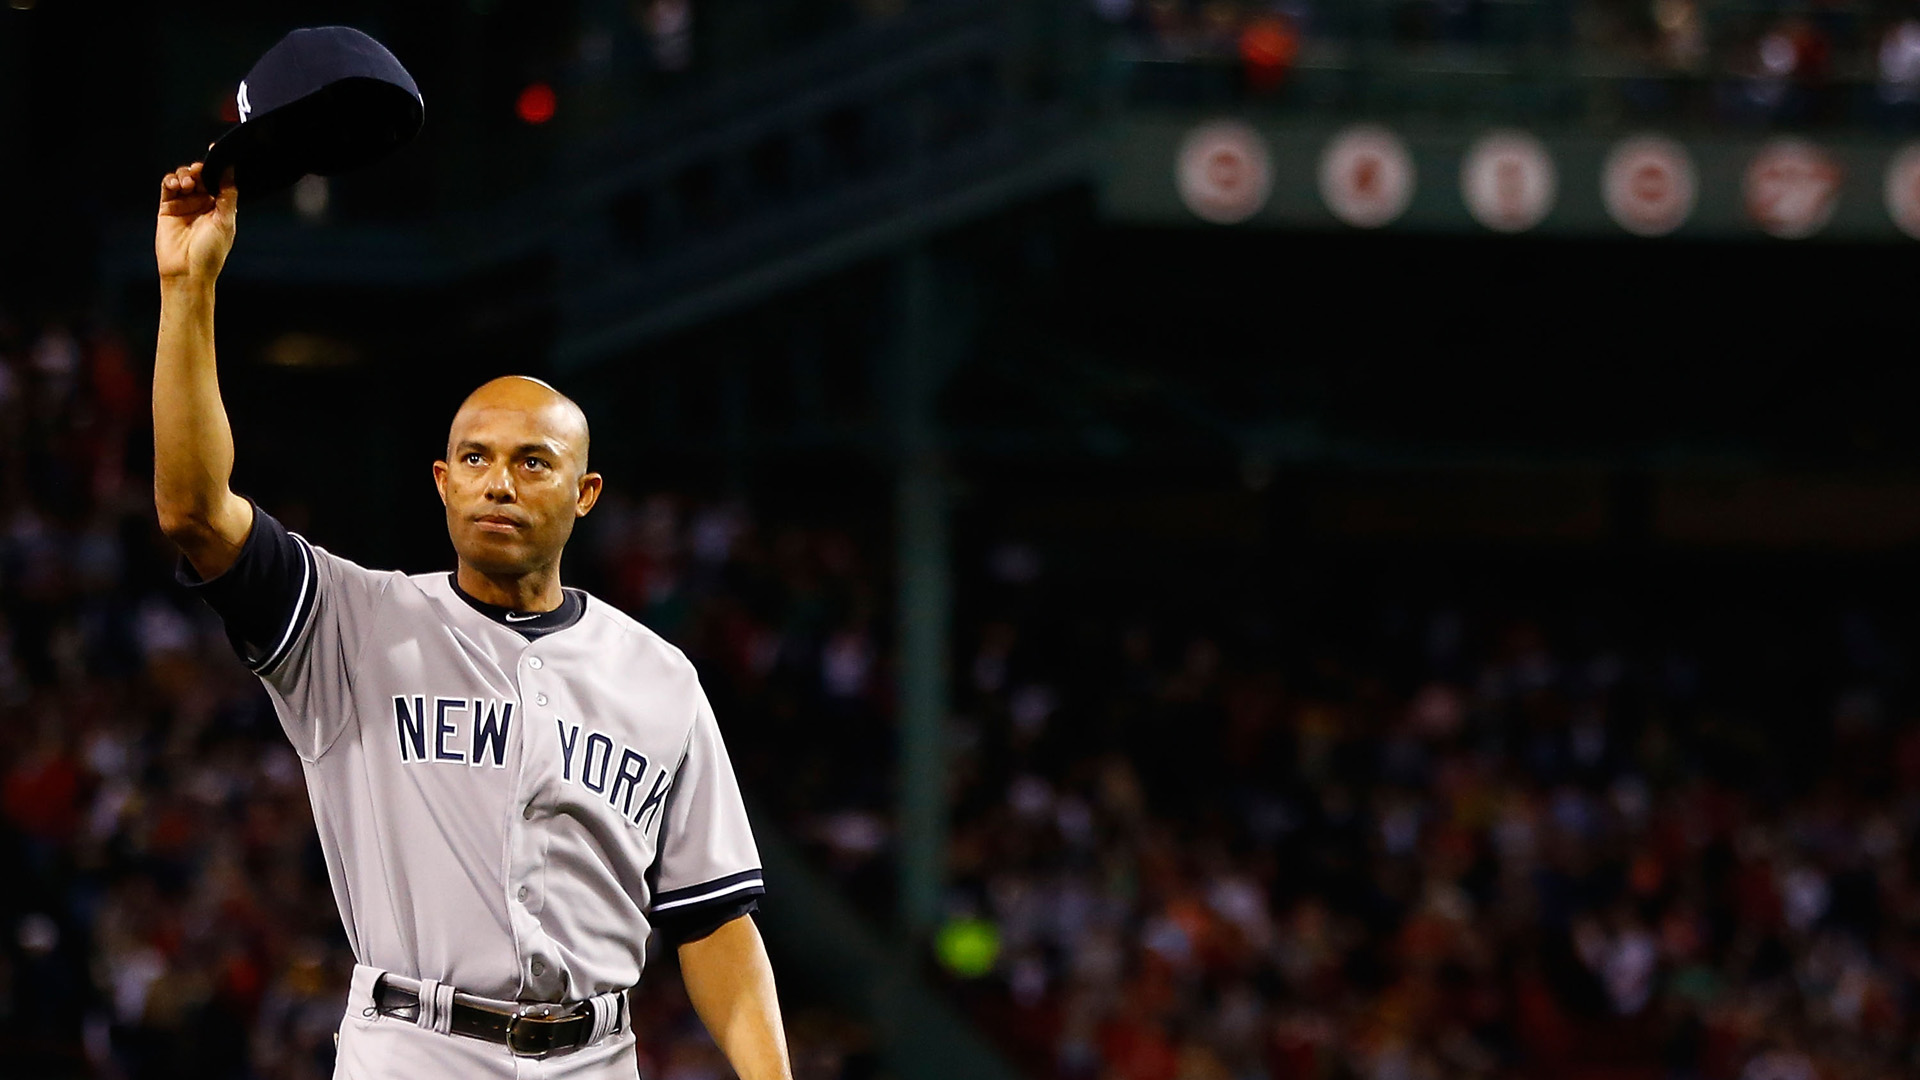 Mariano Rivera #42 of the New York Yankees tips his hat to the crowd after being honored prior to the game against the Boston Red Sox on September 15, 2013 at Fenway Park in Boston, Massachusetts. (Credit: Jared Wickerham/Getty Images)